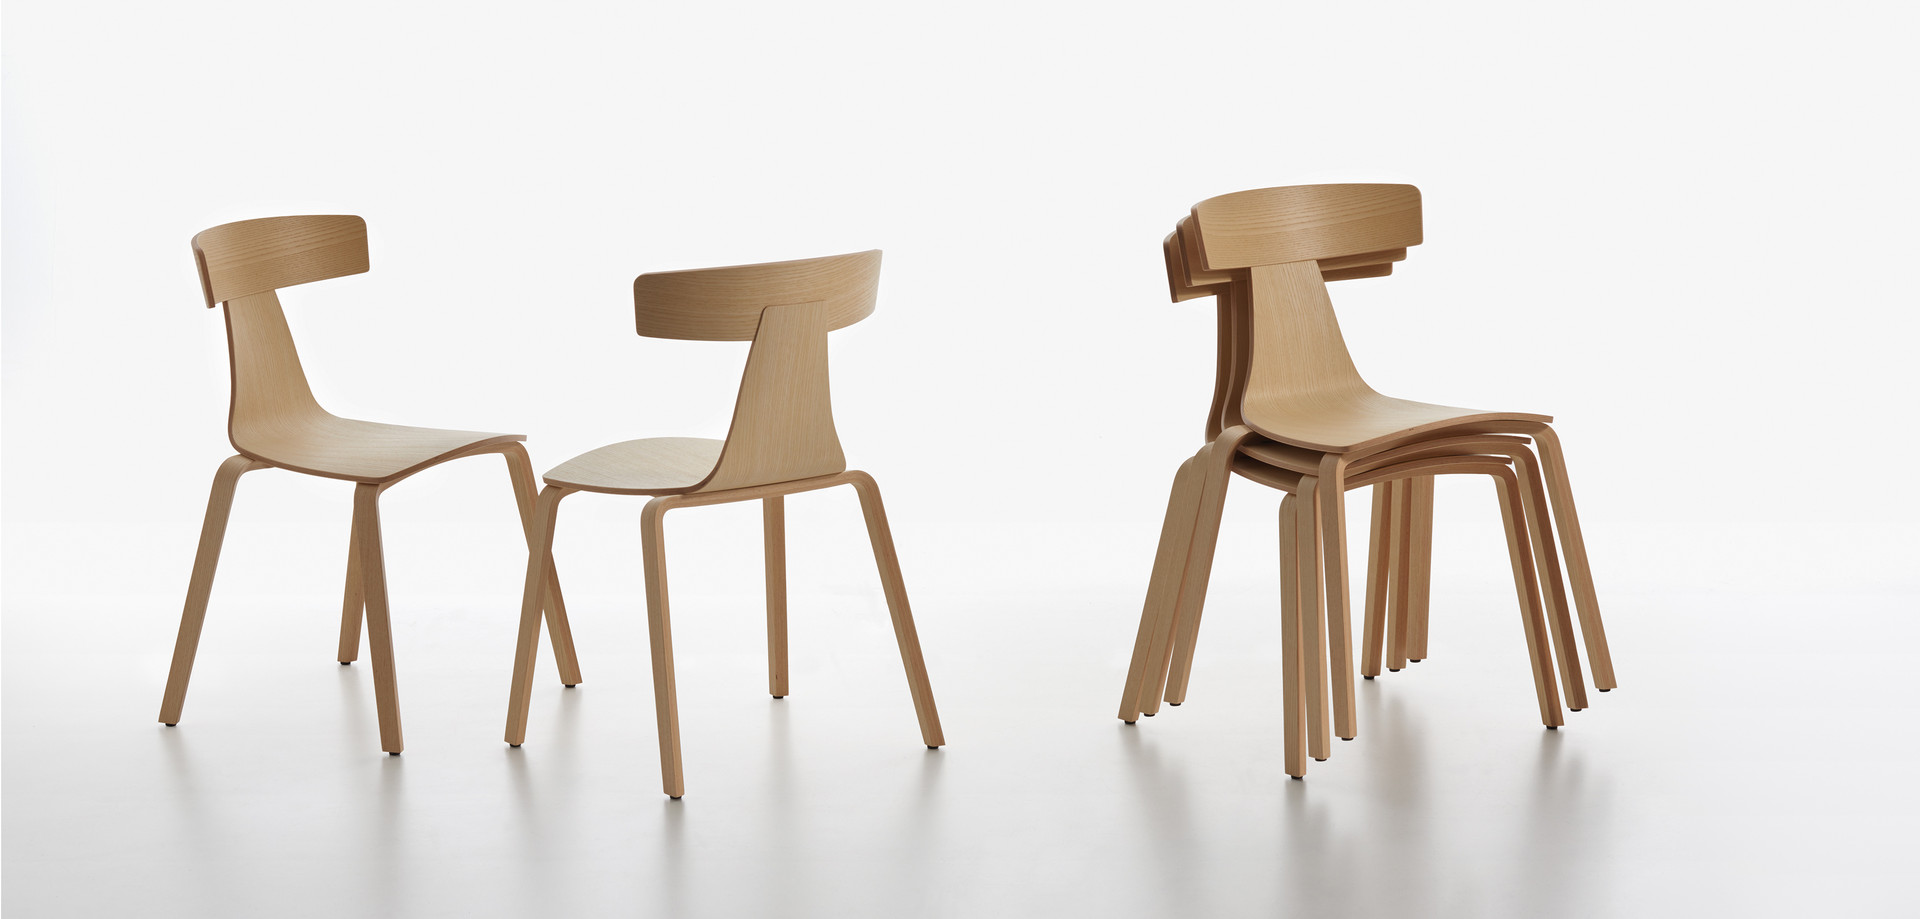 Plank - REMO wood chair, natural finished ash, stackable and not stackable.